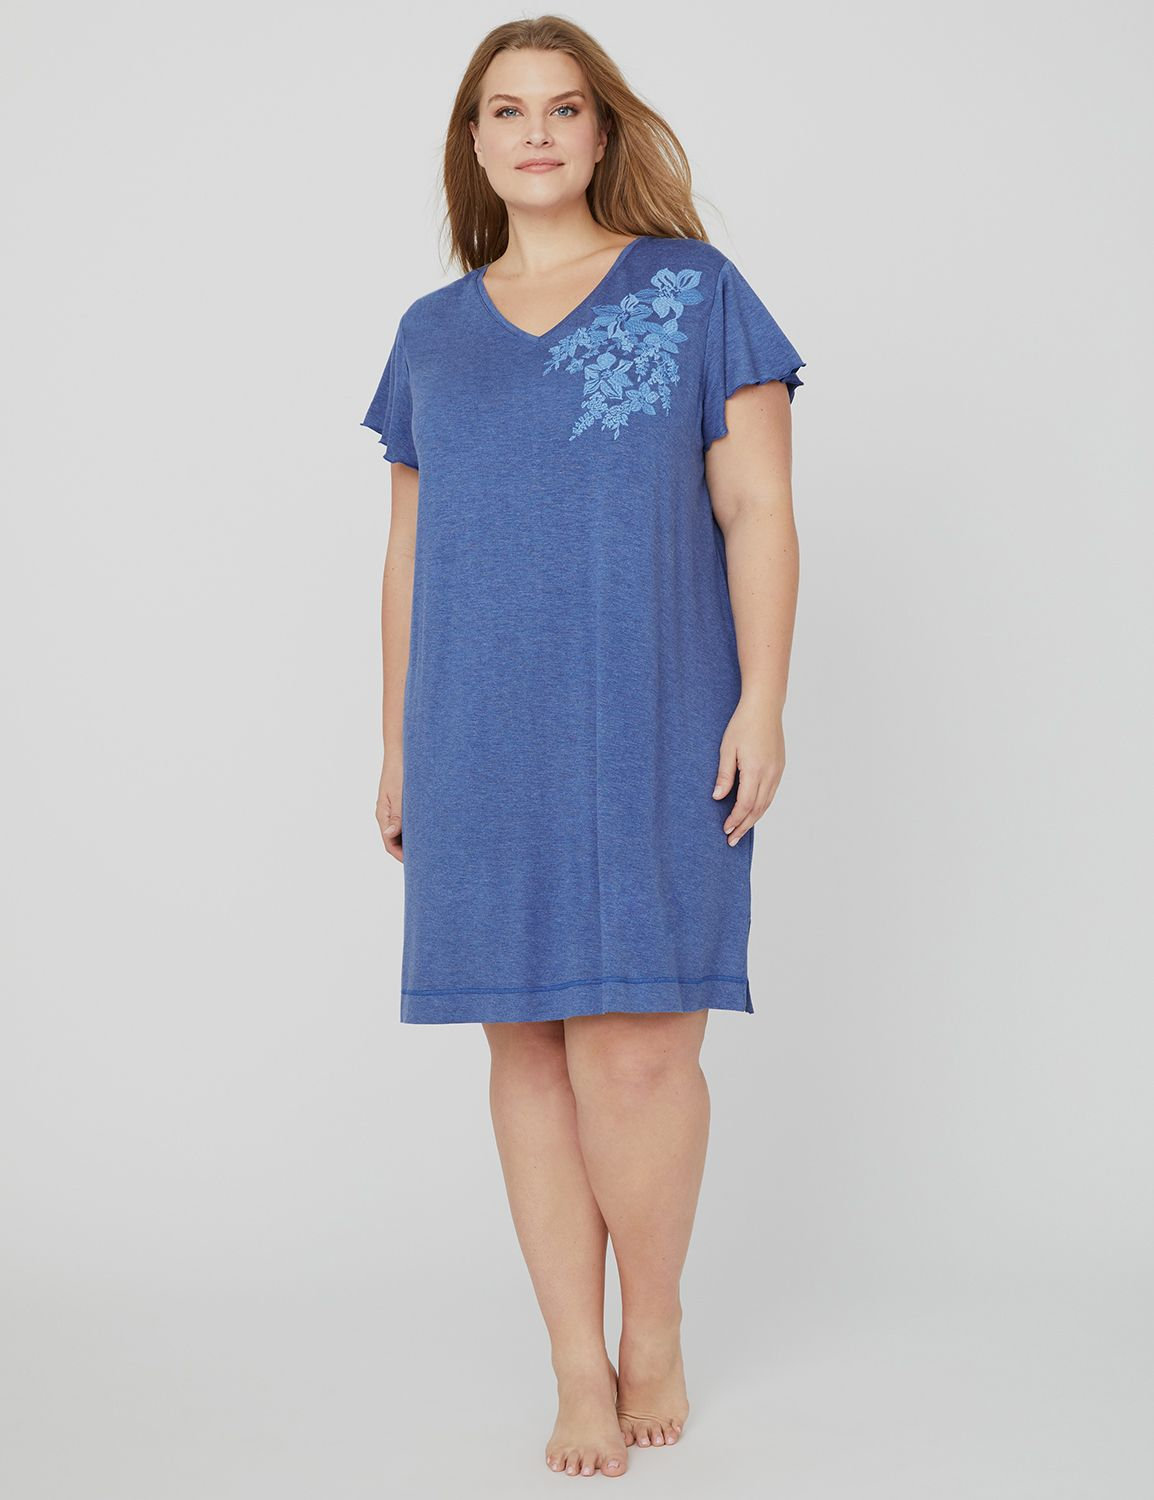 Embroidered Terry Sleep Tee 1088486- Embroidered SS f/t sleepsh MP-300096240